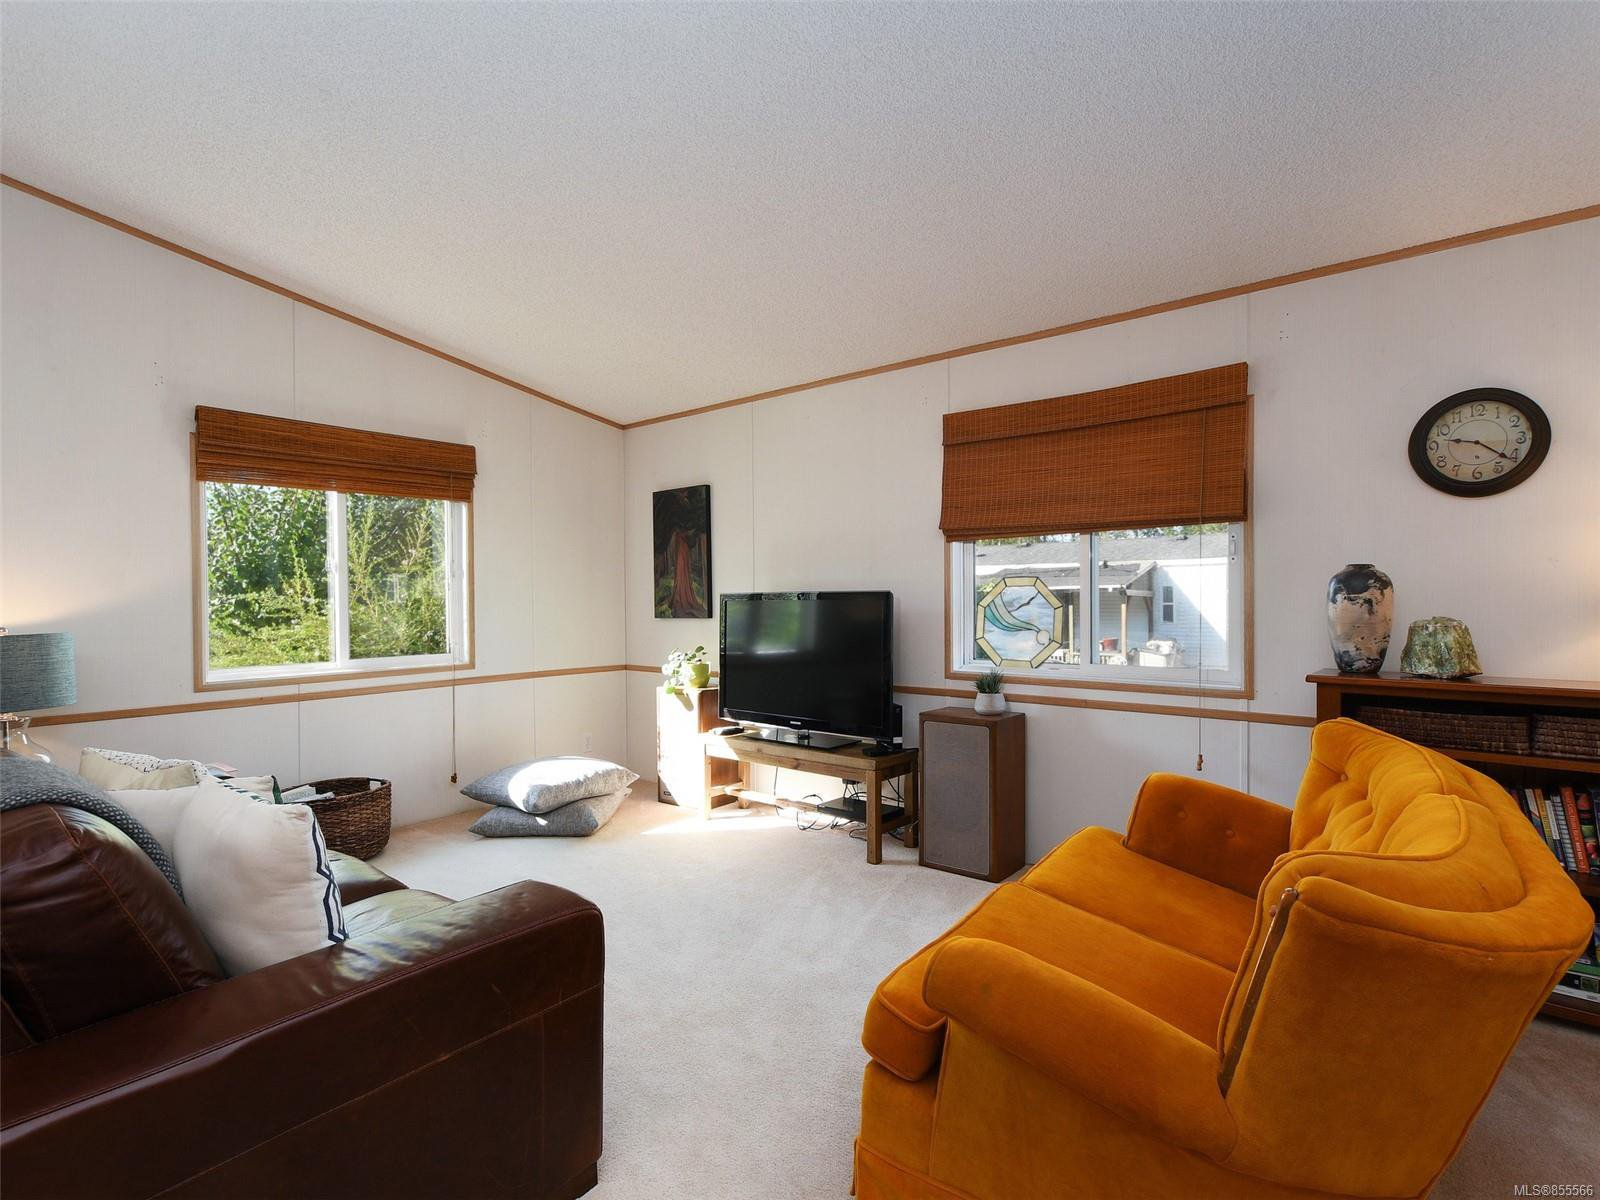 Photo 4: Photos: 28 7021 W Grant Rd in : Sk John Muir Manufactured Home for sale (Sooke)  : MLS®# 855566